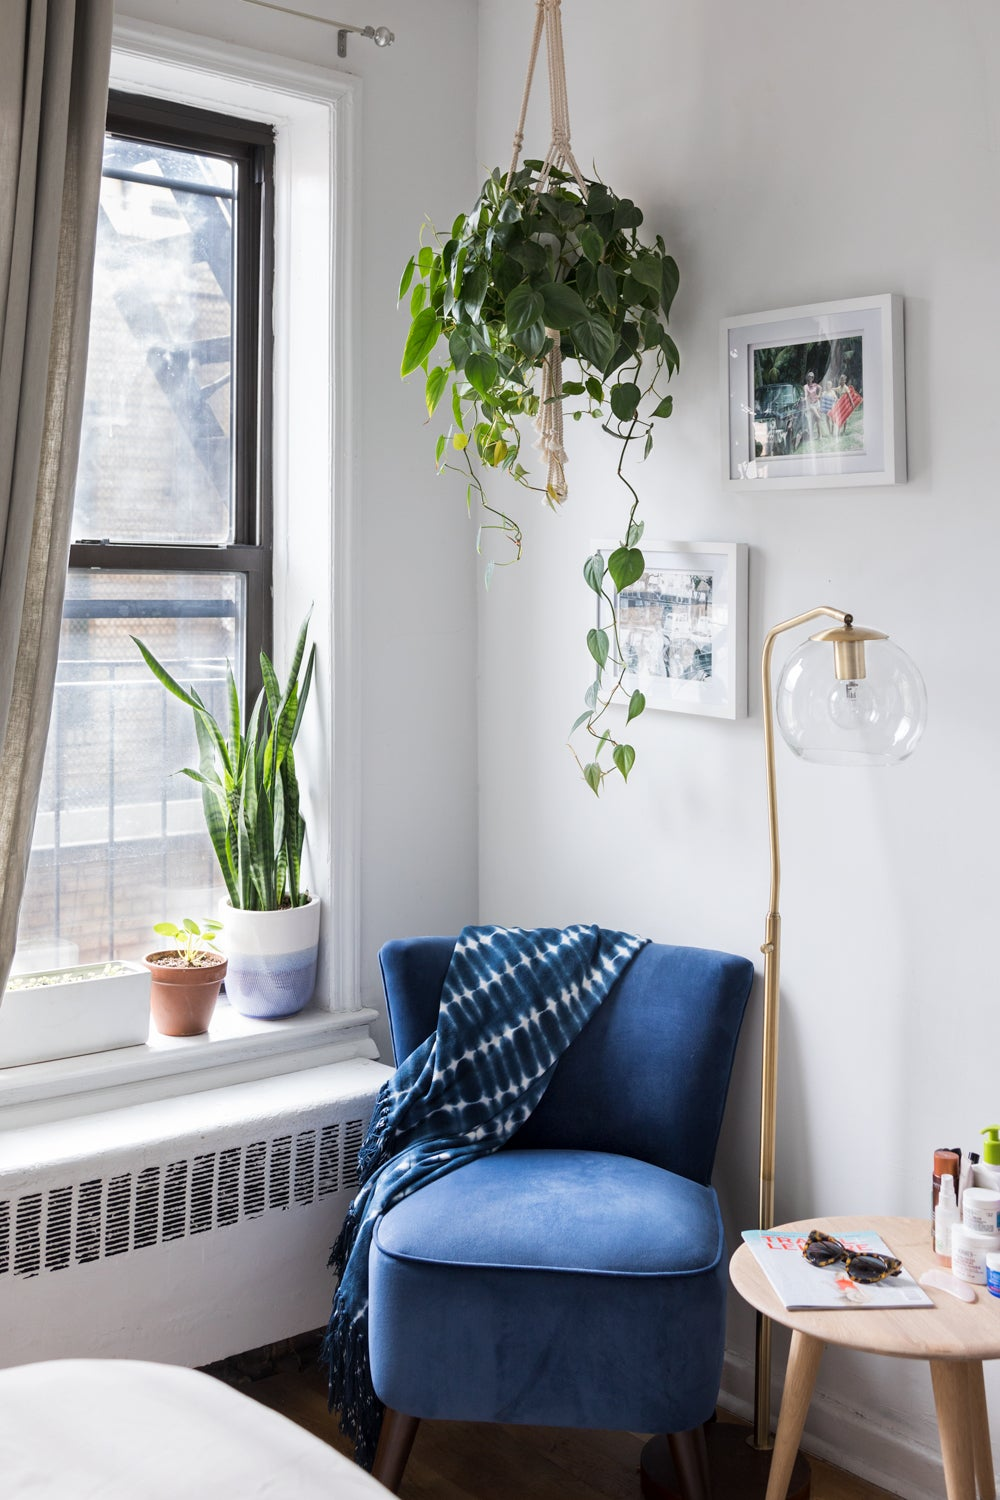 Corner of a room with a chair and a plant